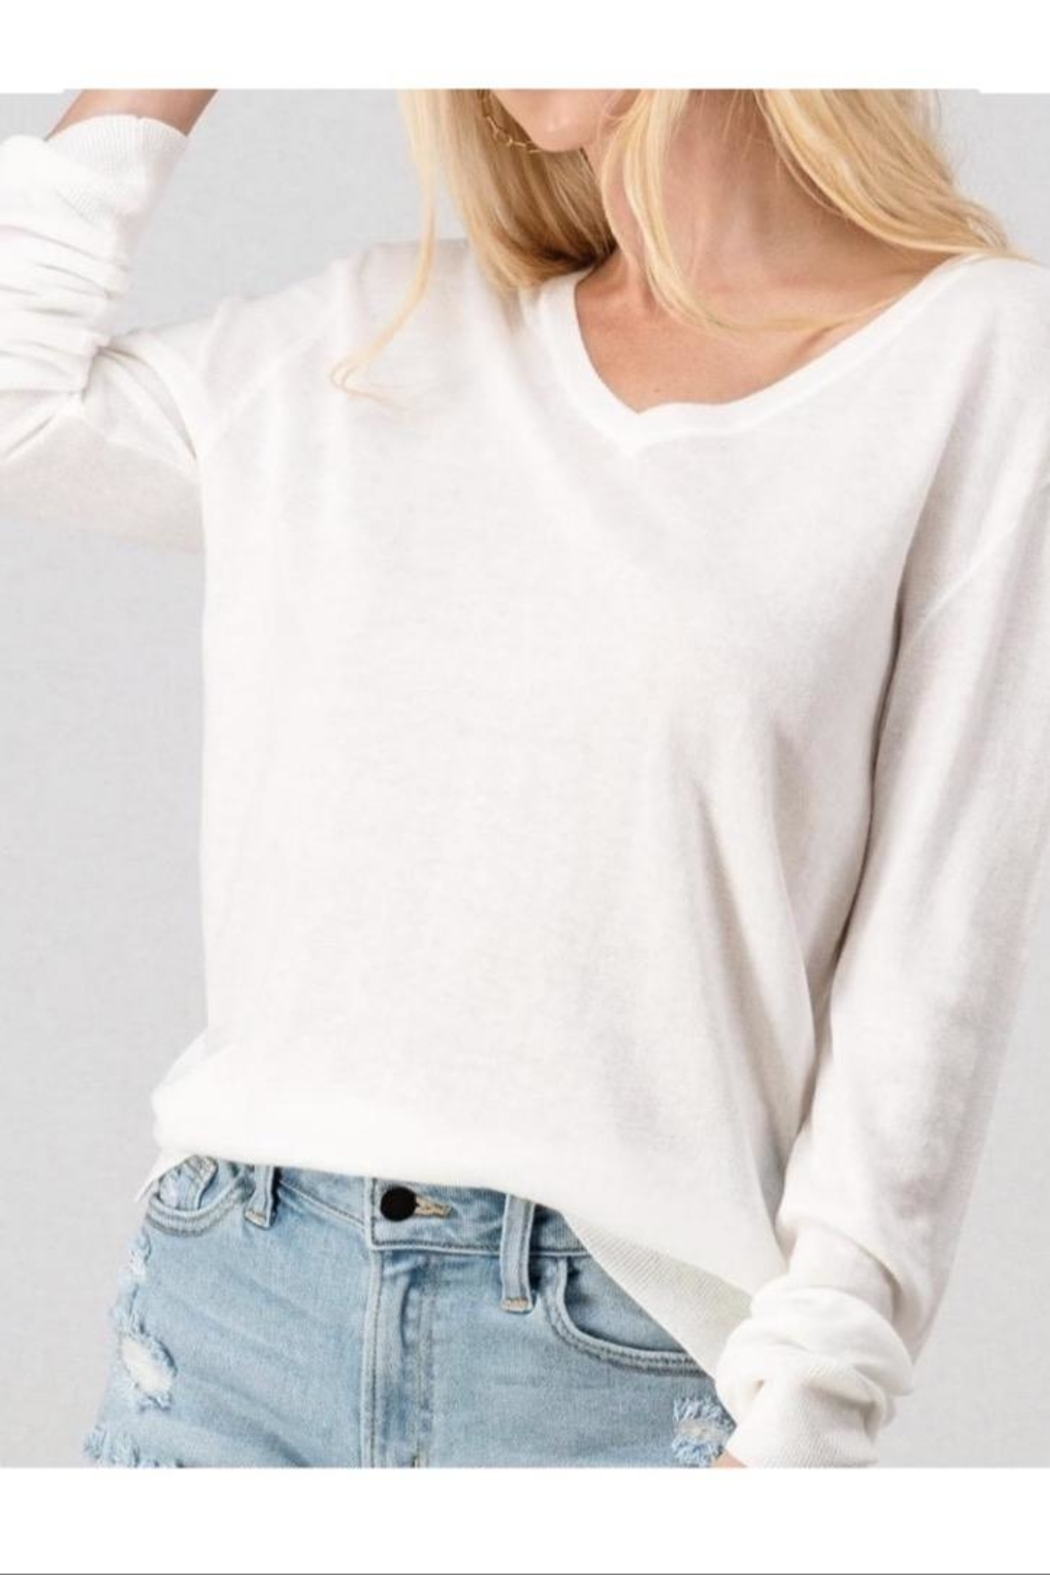 Double Zero White V Neck Sweater - Main Image